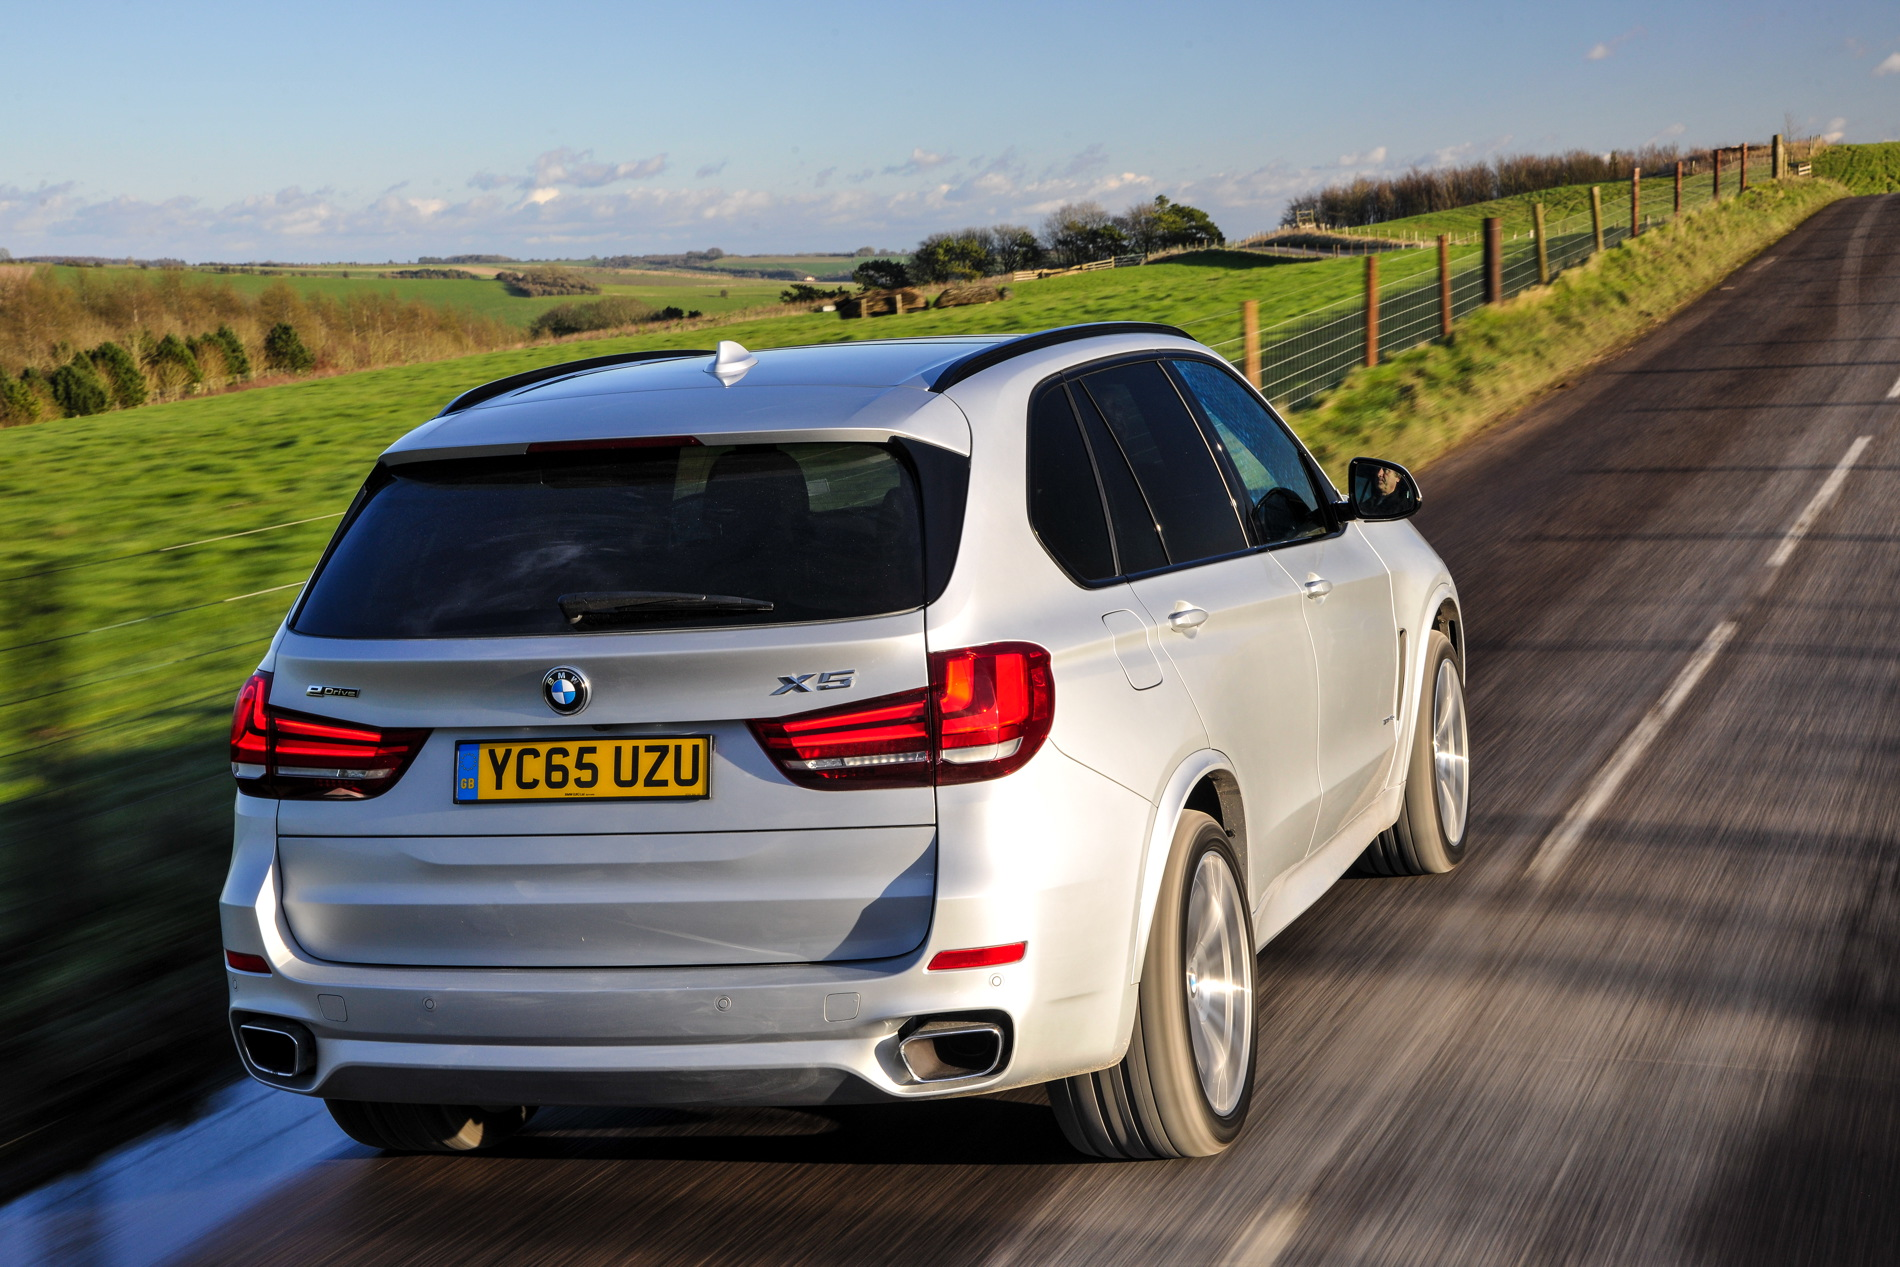 Bmw X5 Xdrive40e Makes Its Uk Debut New Photo Gallery